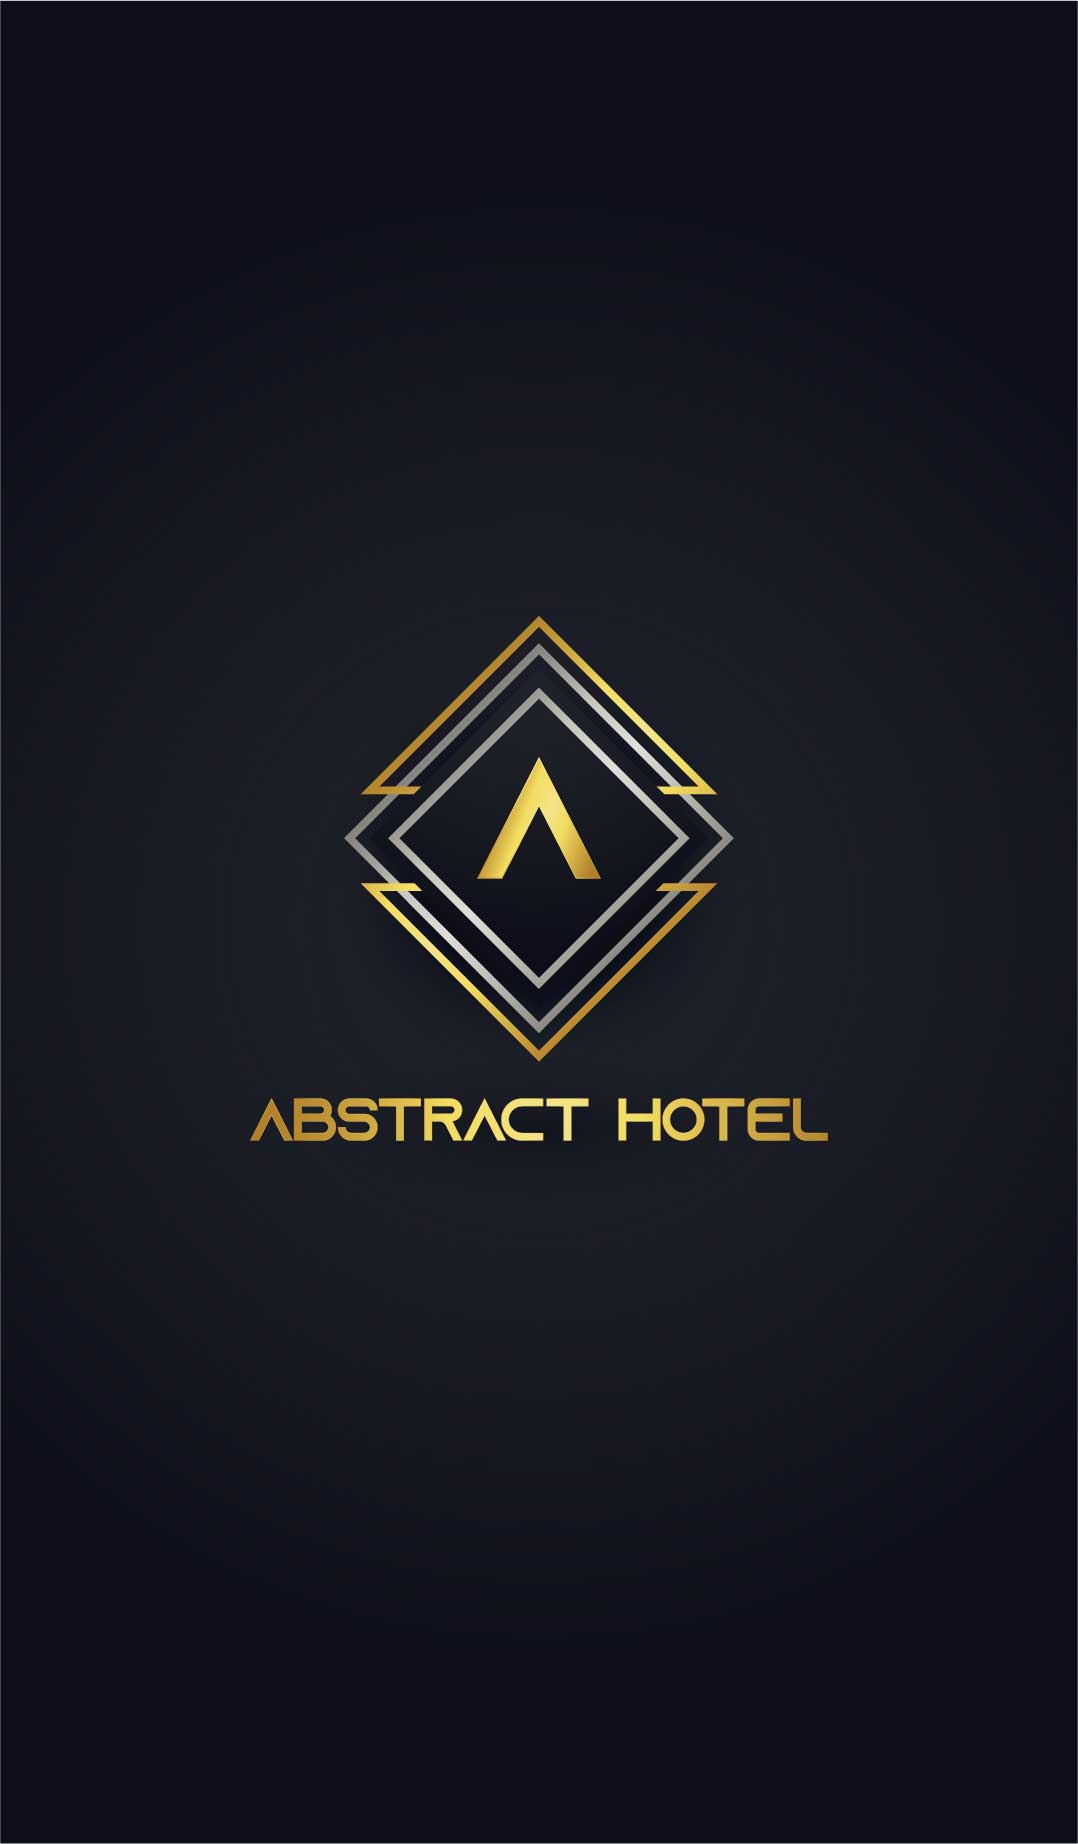 logo design service for Abstract Hotel